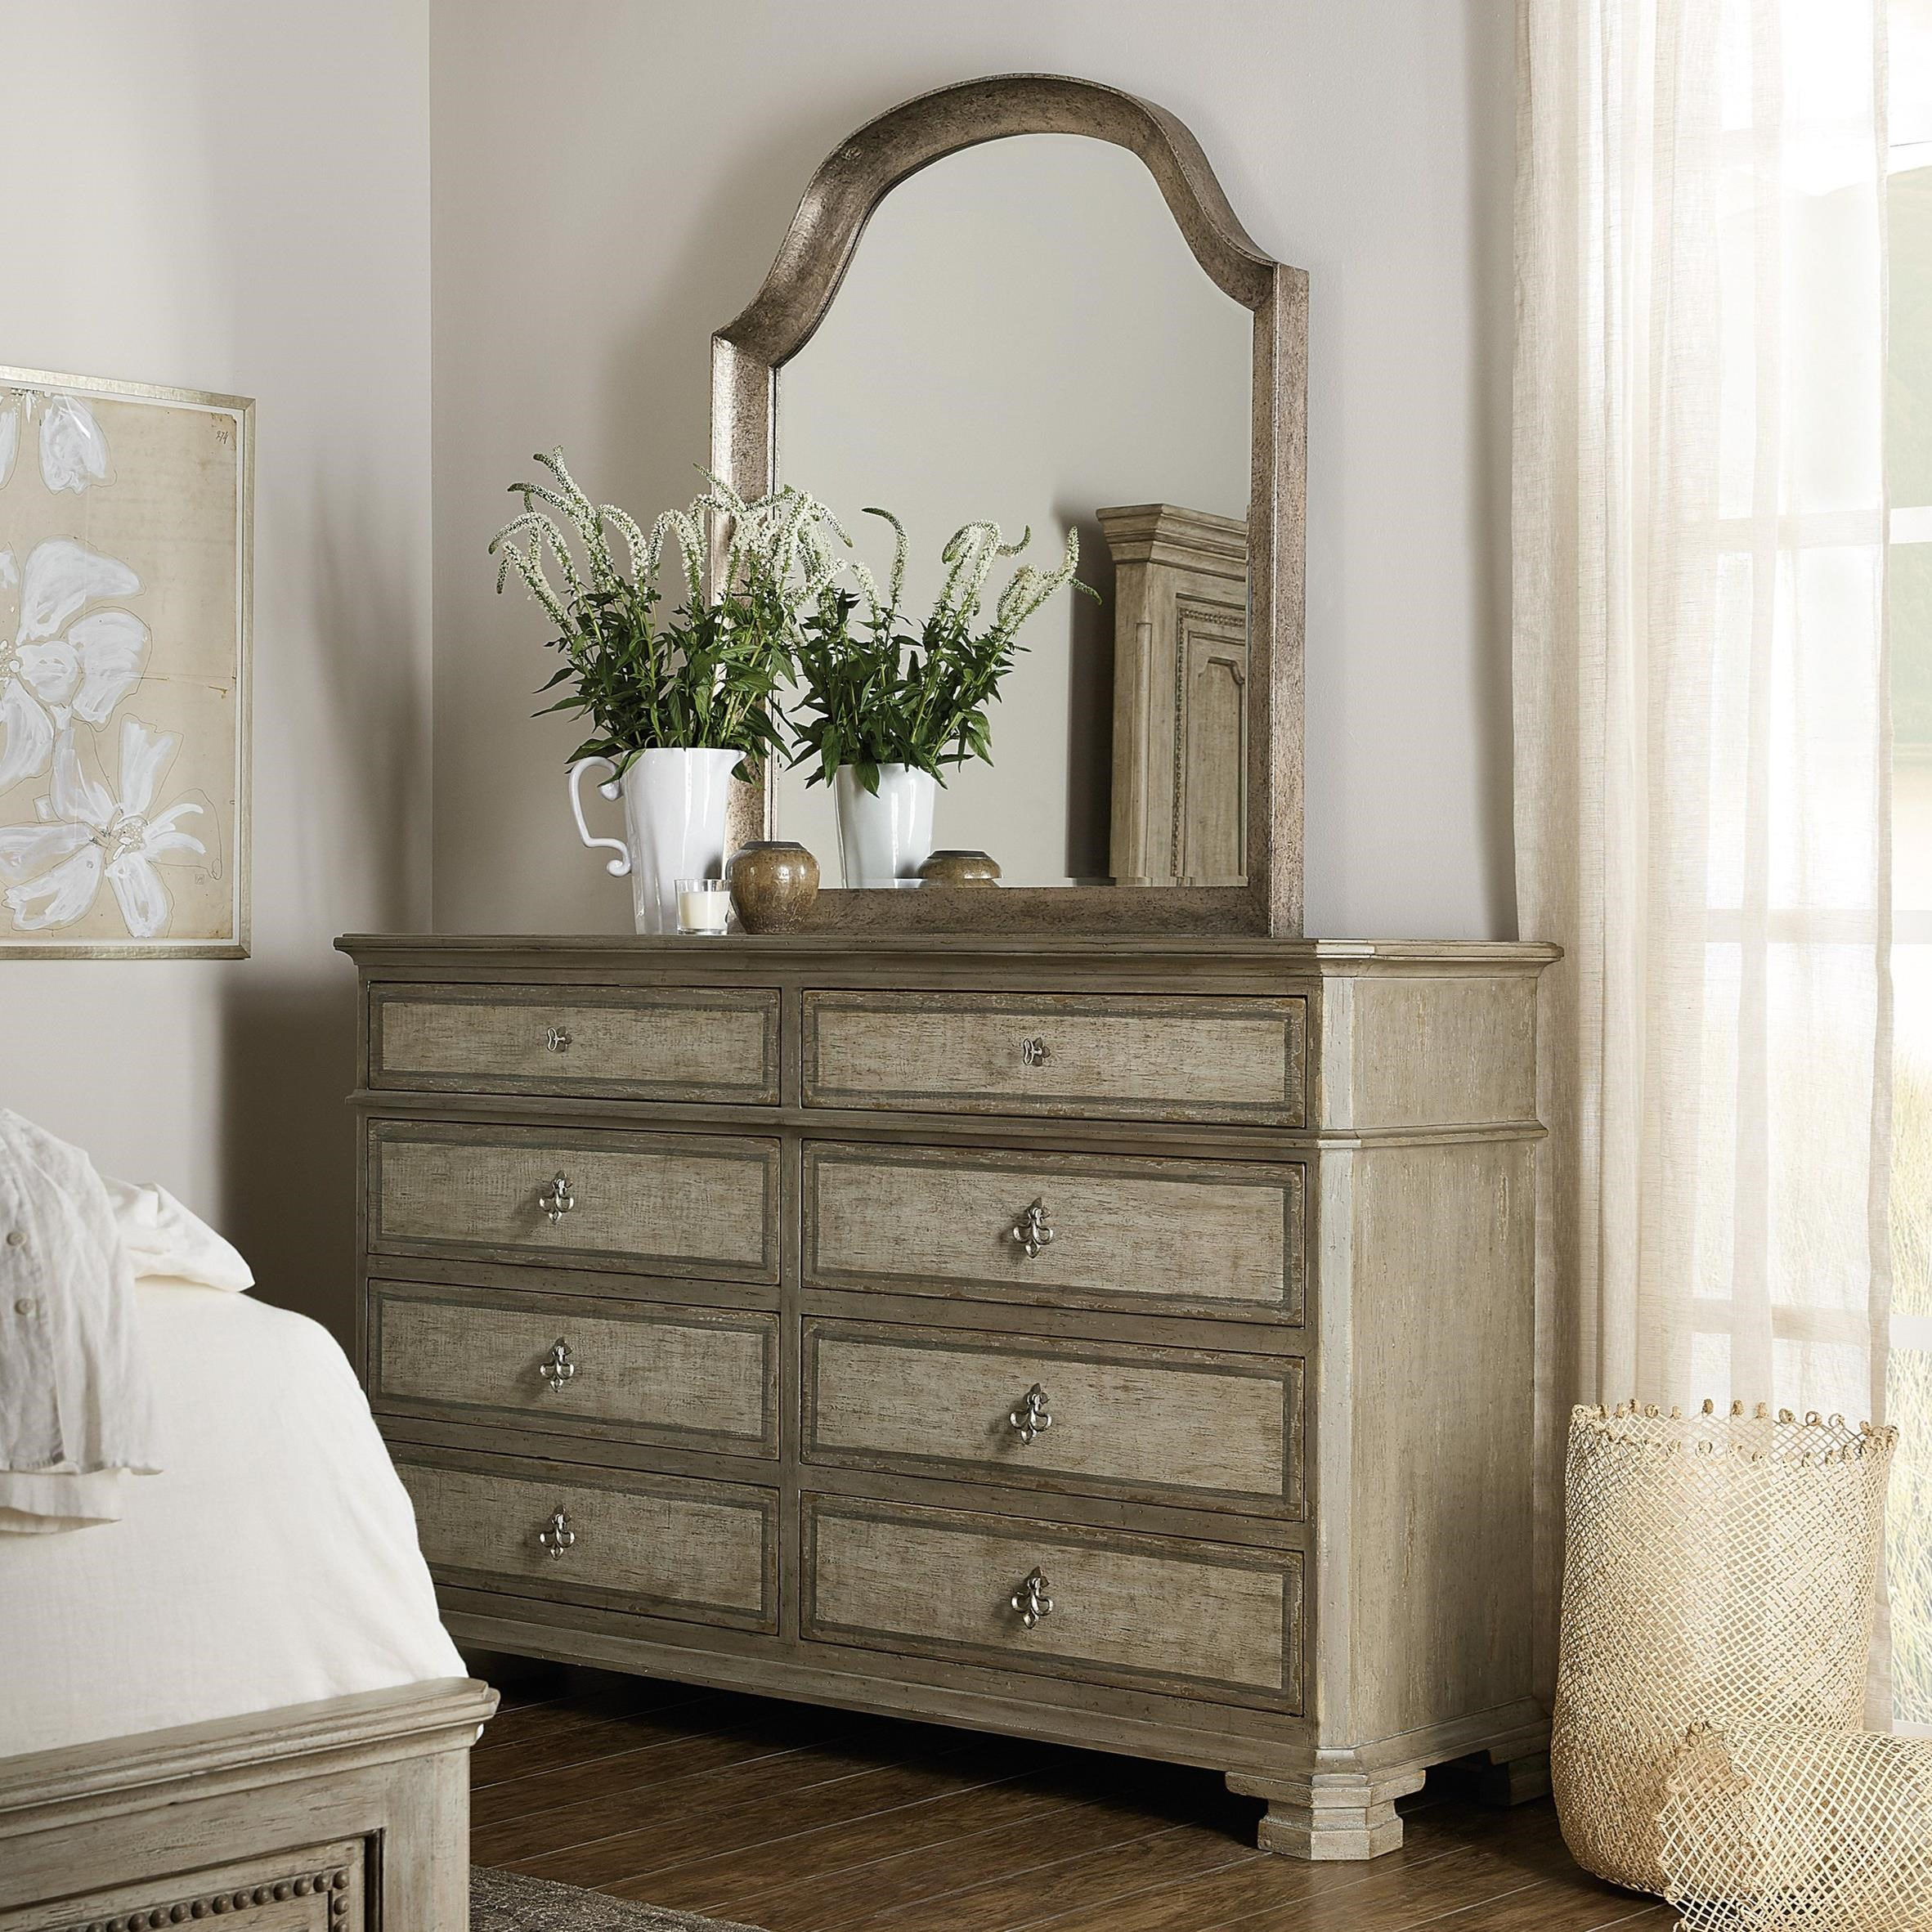 Alfresco Dresser and Mirror Set by Hooker Furniture at Alison Craig Home Furnishings